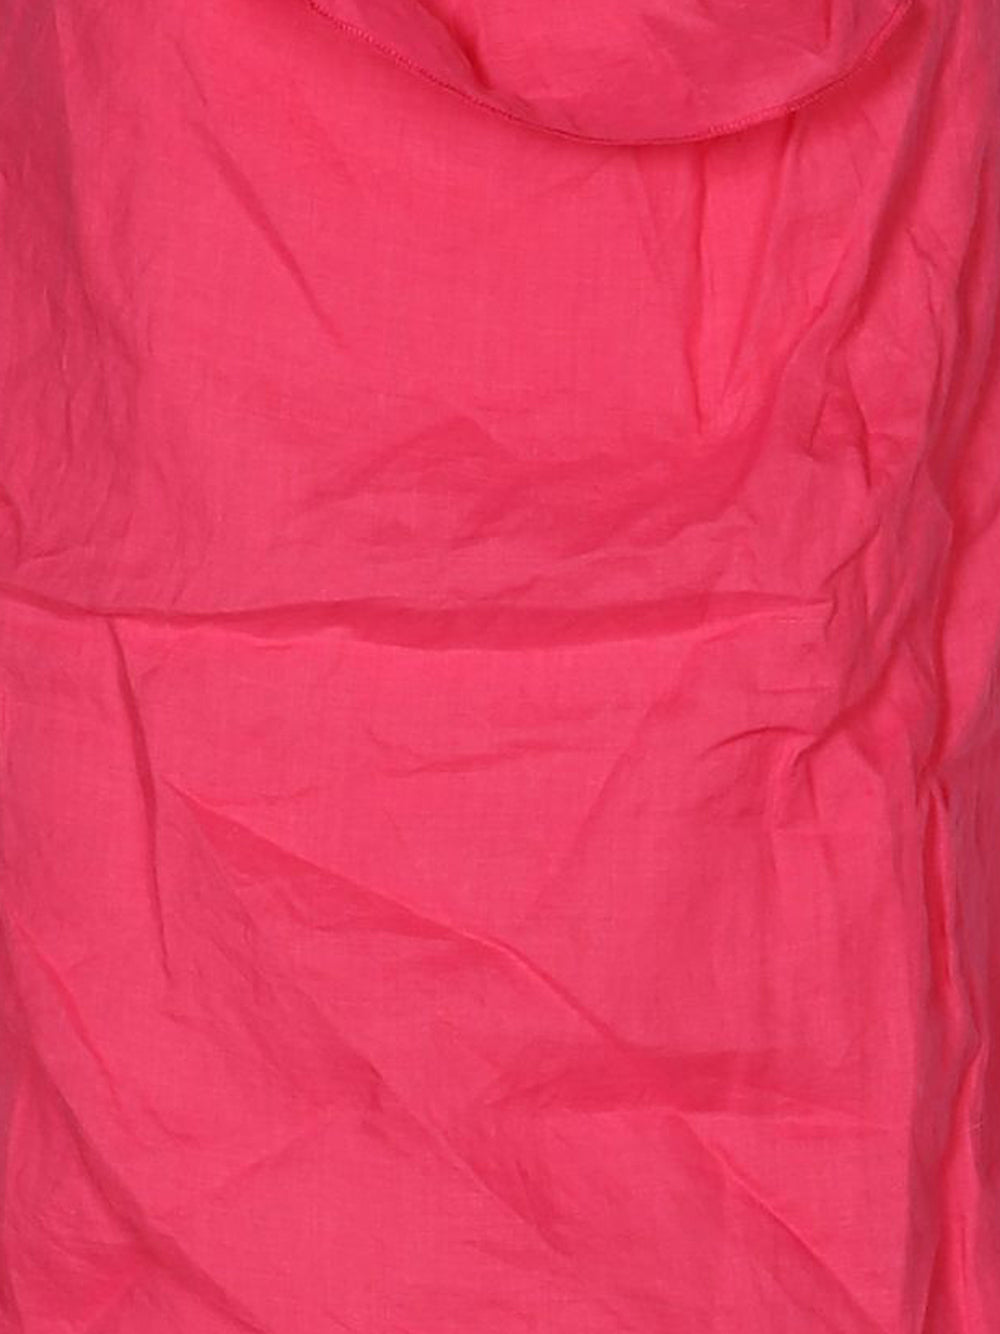 Detail photo of Preloved Cerruti 1881 Pink Woman's sleeveless top - size 8/S